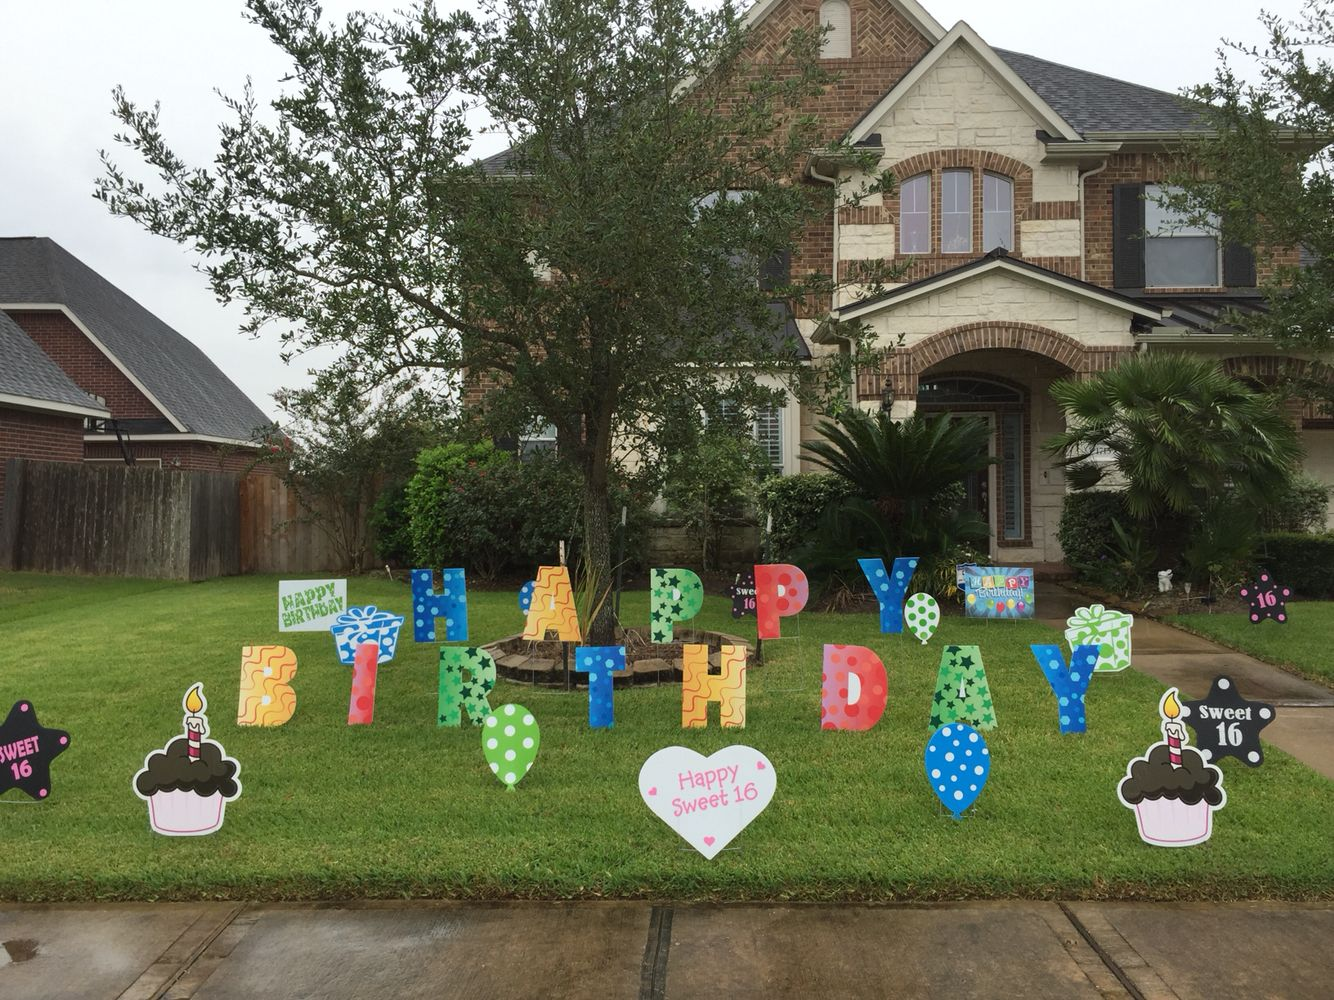 Happy Birthday Lawn Letters With Other Yard Decor Signs